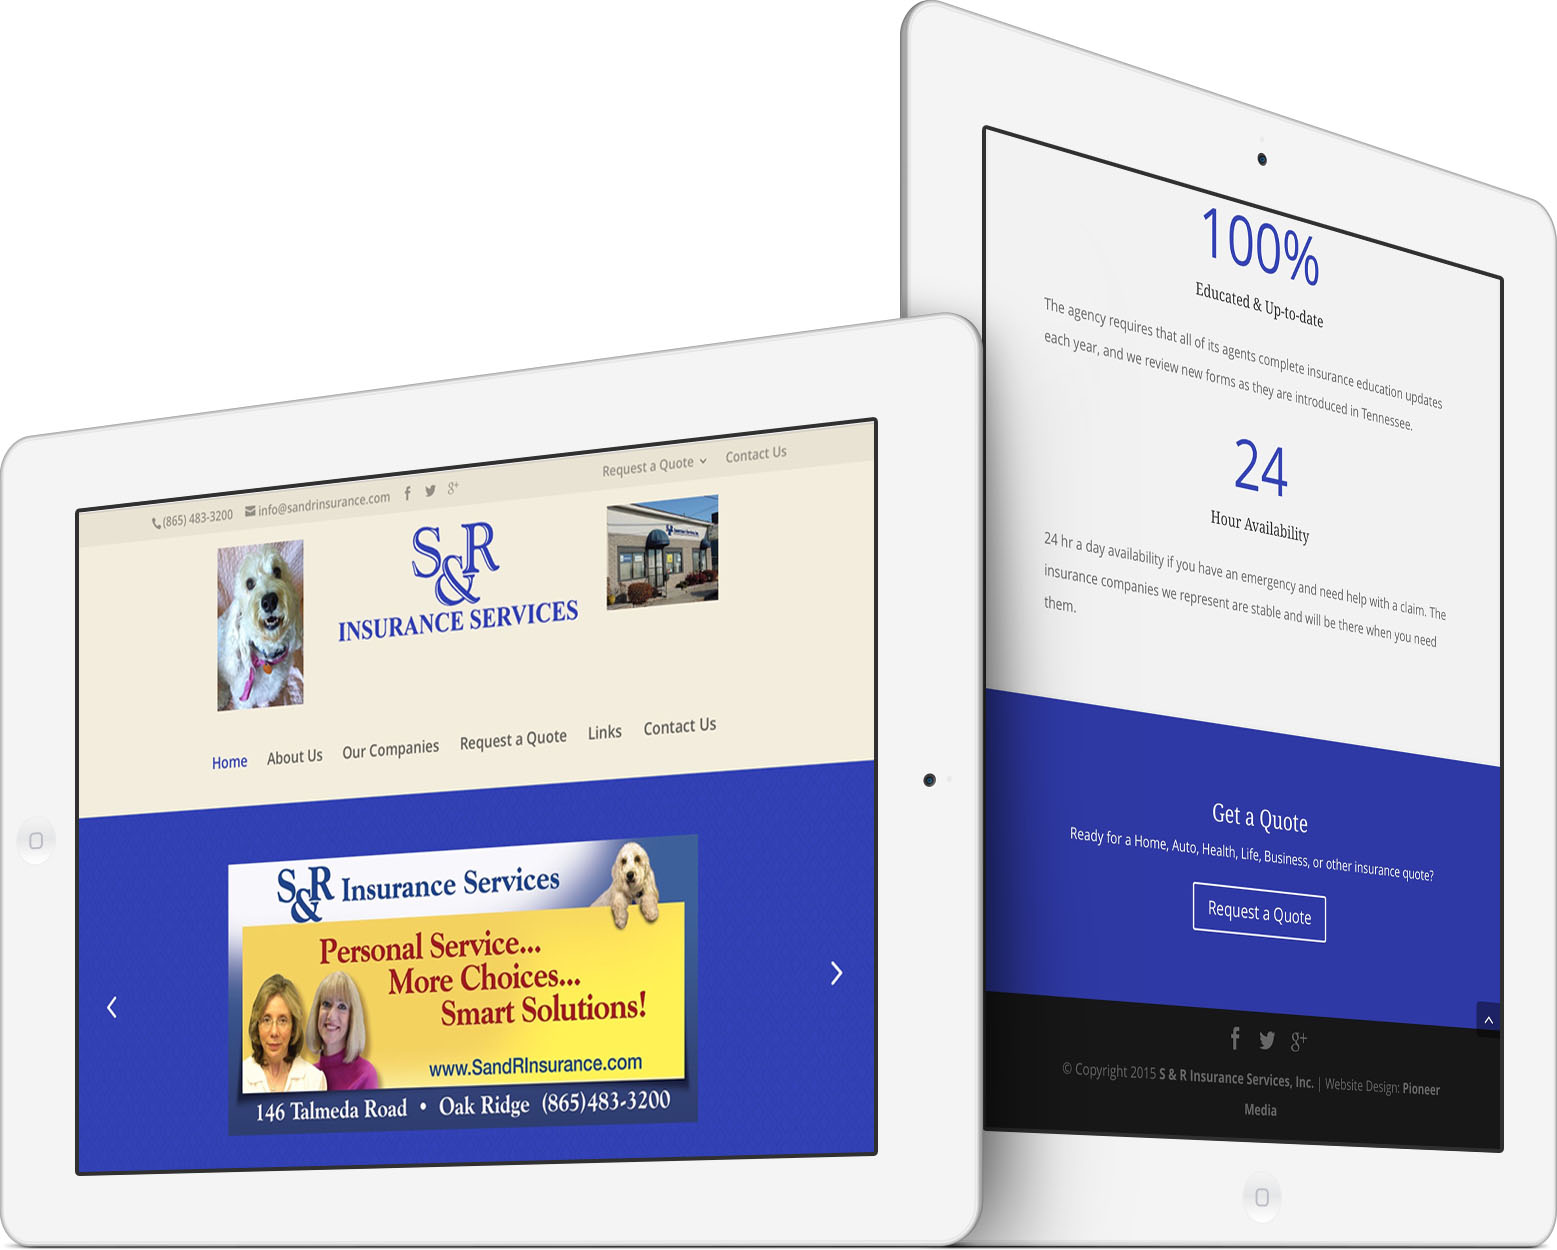 S & R Insurance Services, Inc. on an iPad